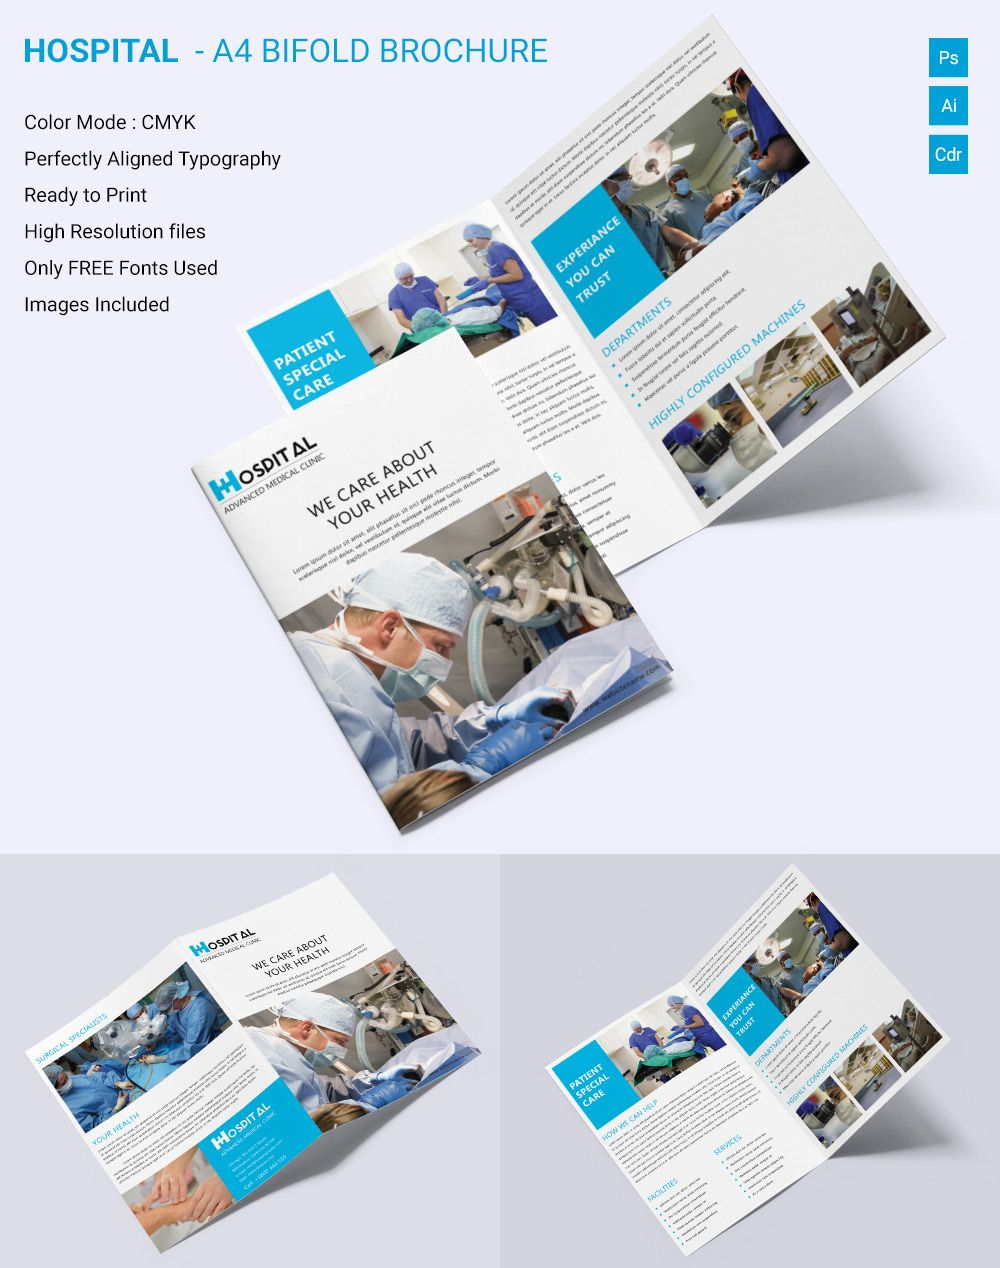 Medical Brochure Template âu20acu201c 39+ Free Psd, Ai, Vector Eps,